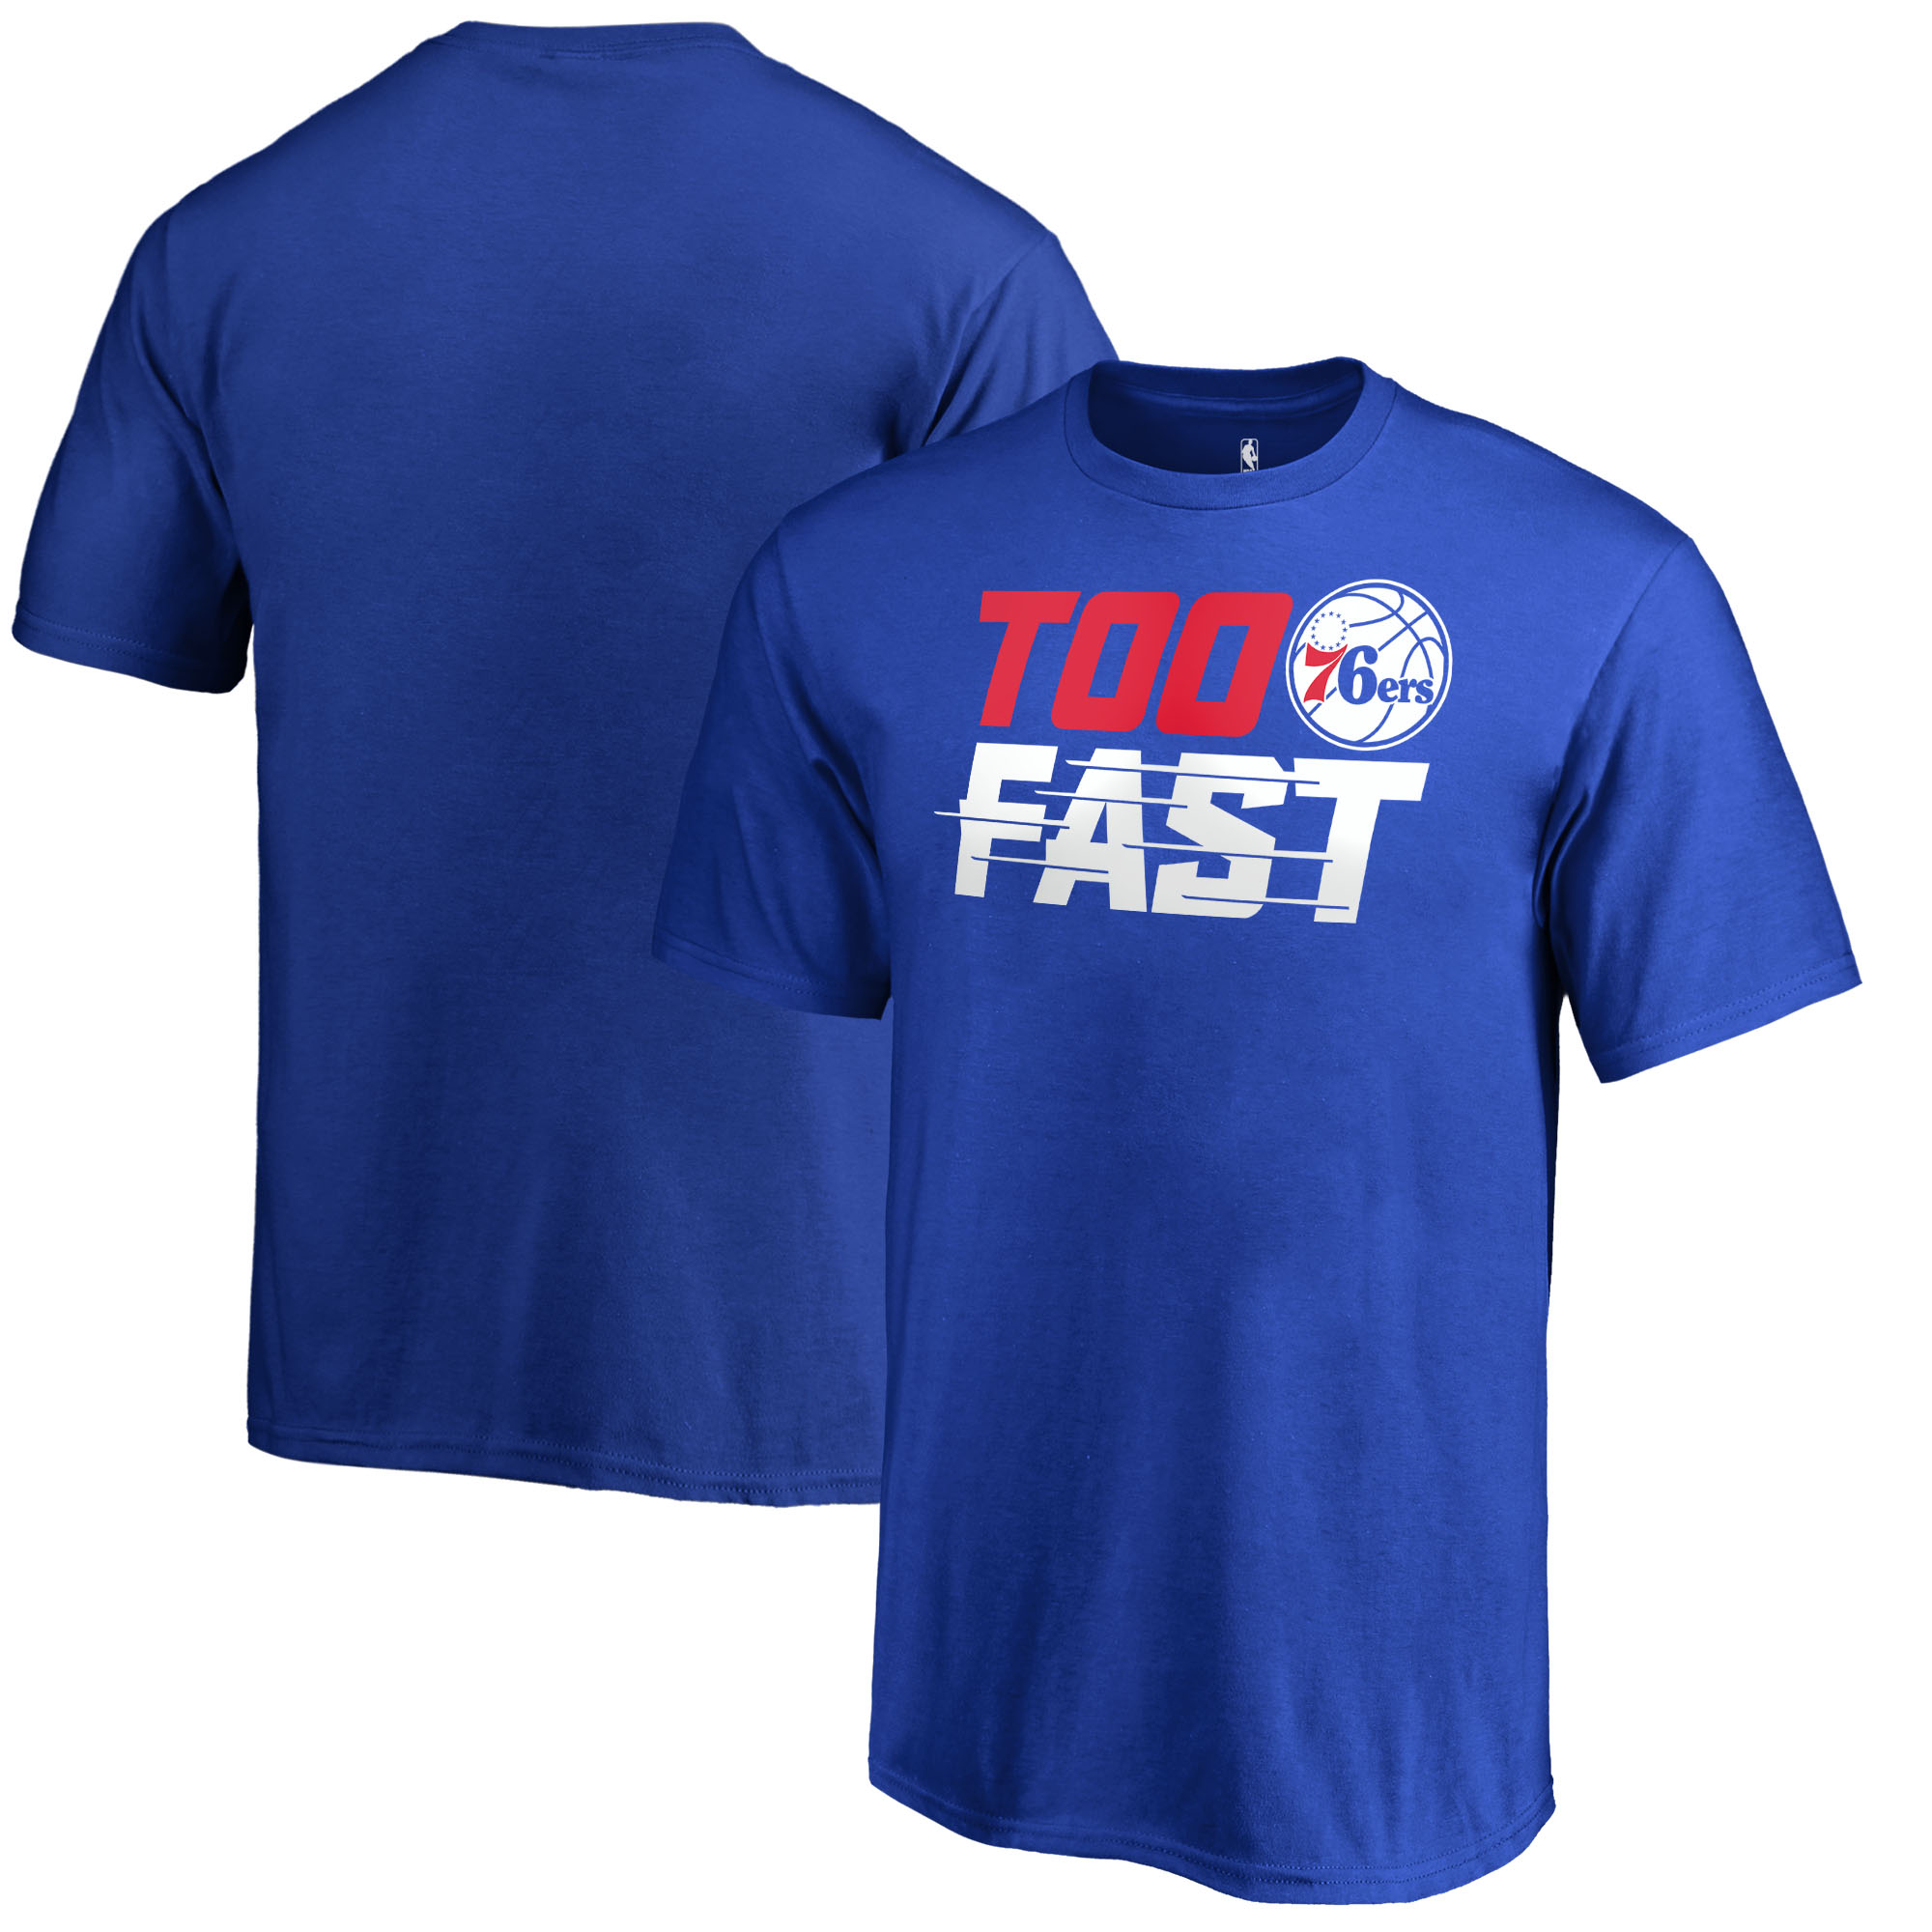 Philadelphia 76ers Fanatics Branded Youth Too Fast T-Shirt - Blue